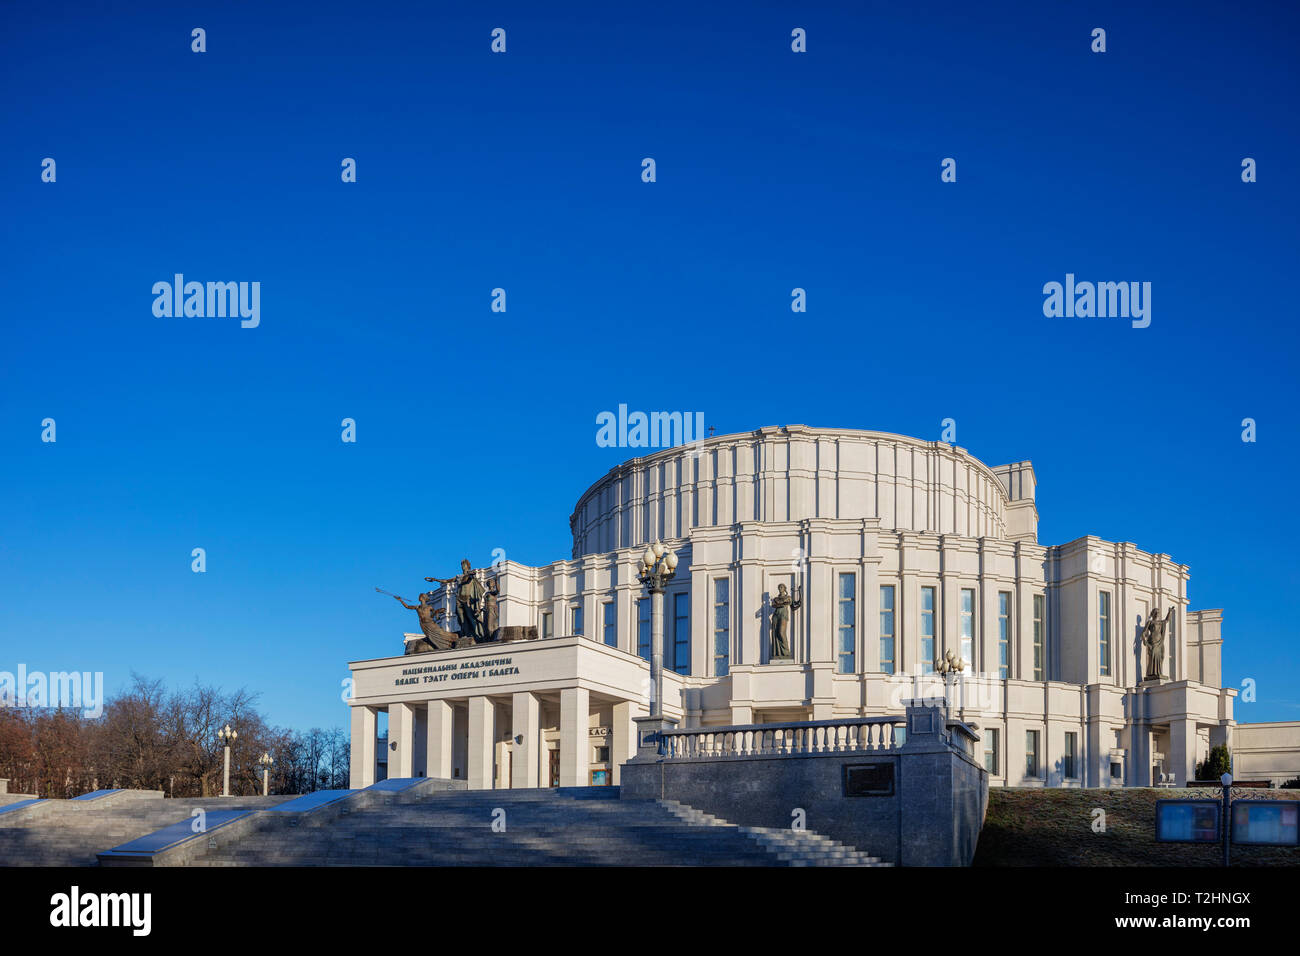 National Opera and Ballet of Belarus, Trinity Suburb, Central Minsk, Belarus, Eastern Europe - Stock Image